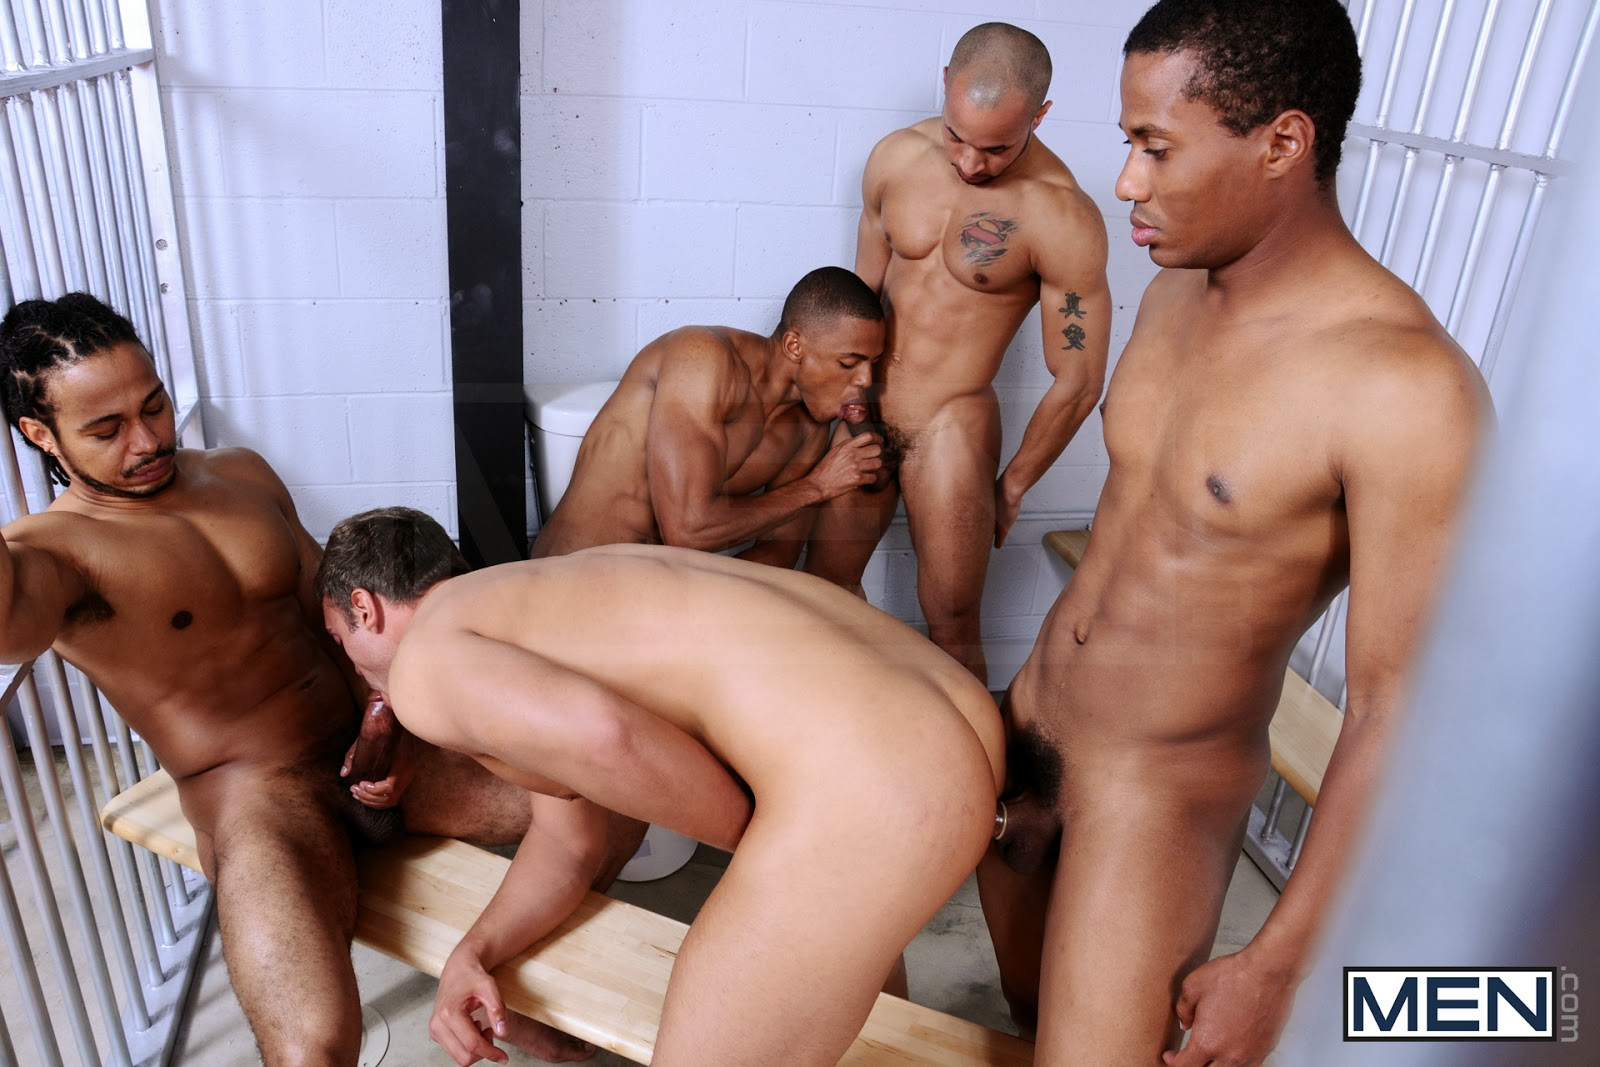 Gay picture search